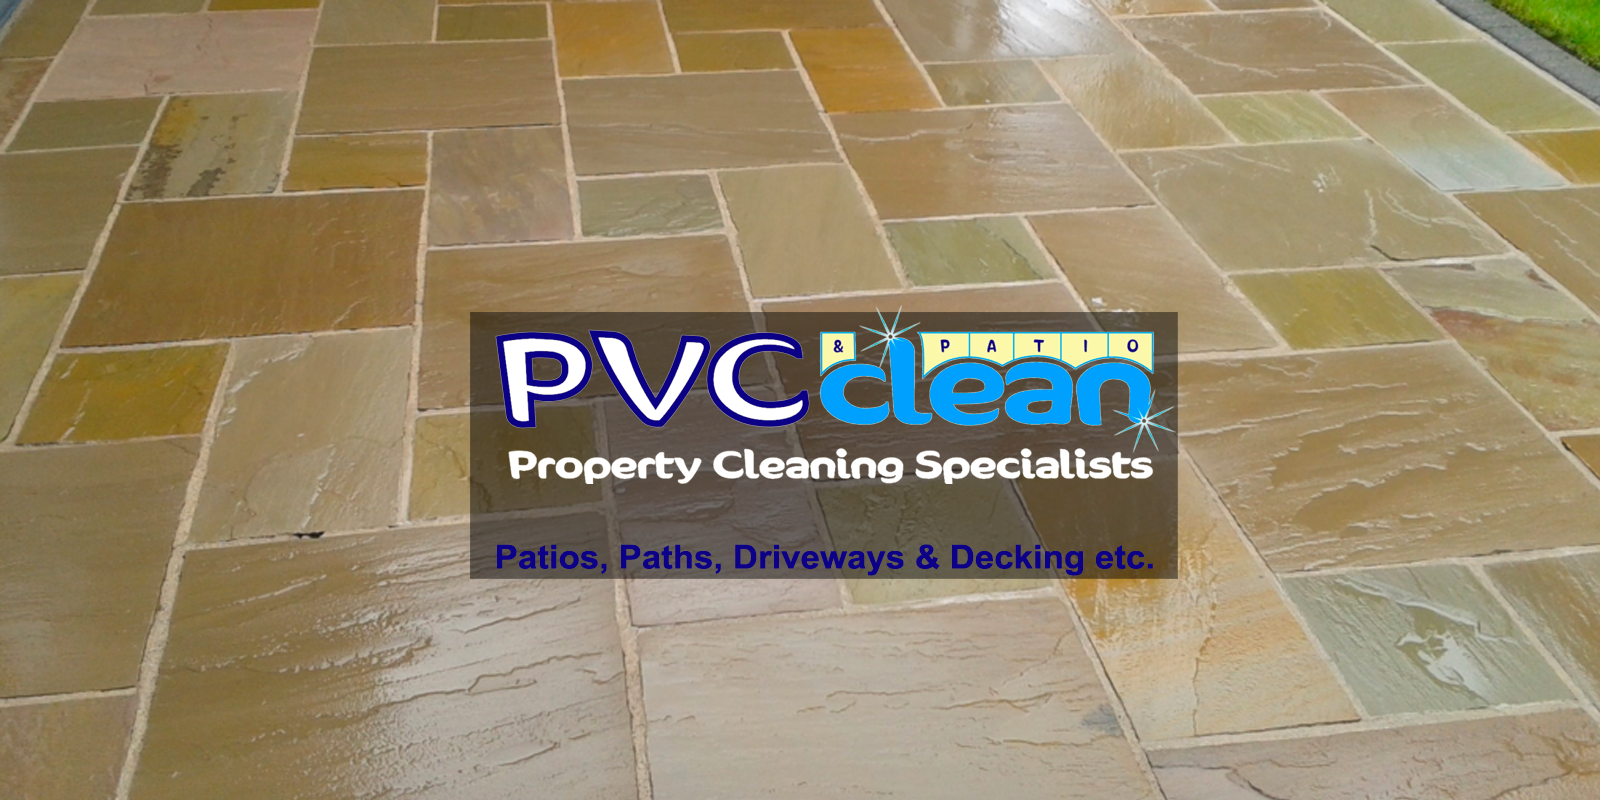 PVC Clean patios, paths, driveways, decking